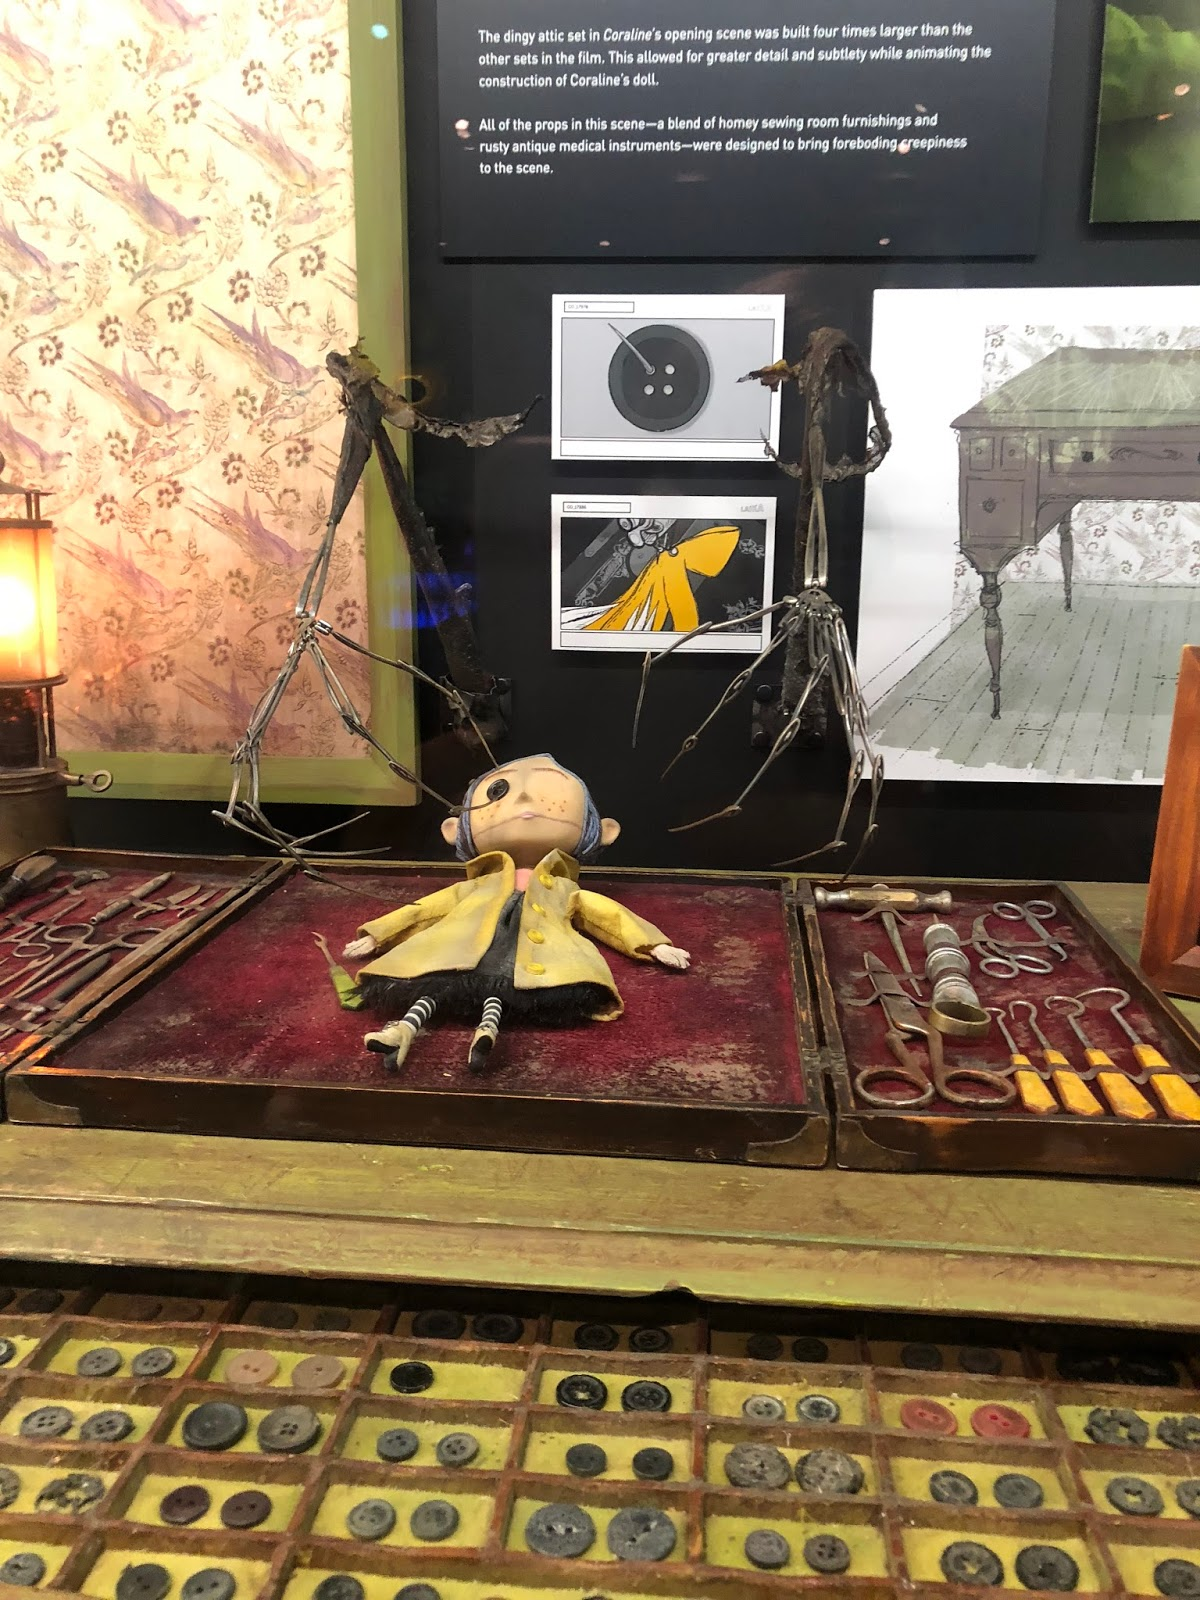 Kim Kasch Blogsite - A Writer's Blog: STOP Motion with Laika at The